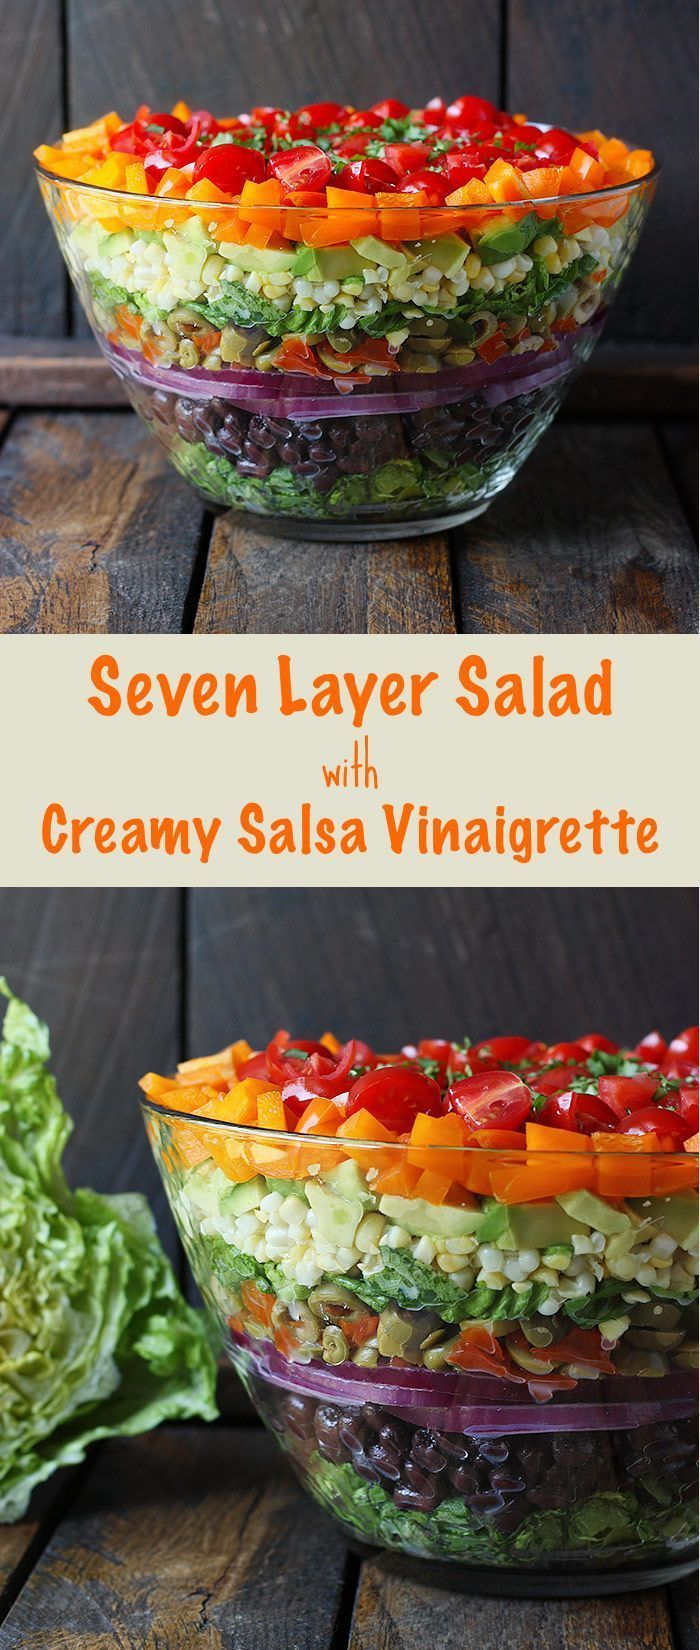 Seven Layer Salad with Creamy Salsa Vinaigrette  - this fresh, no gloppy-layers-of-mayo salad is a beautiful showstopper on your table (and healthy, too). Recipe at SoupAddict.com | rainbow salad | vegetables | salsa dressing | vegetarian